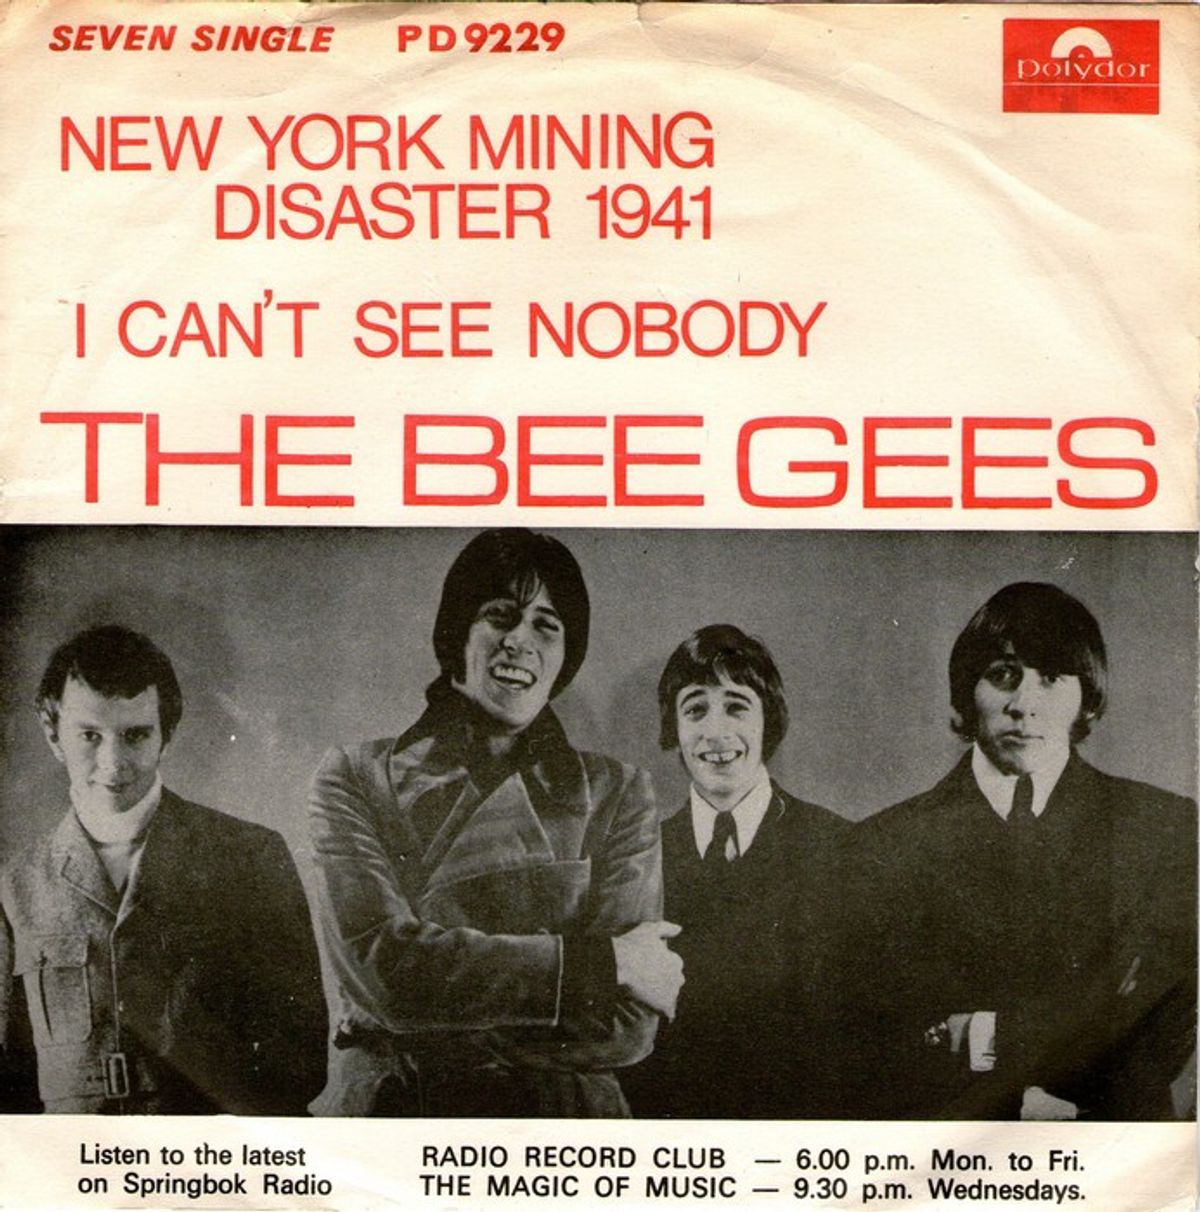 #DisasterSongs - The Bee Gees - New York Mining Disaster 1941 (1967)